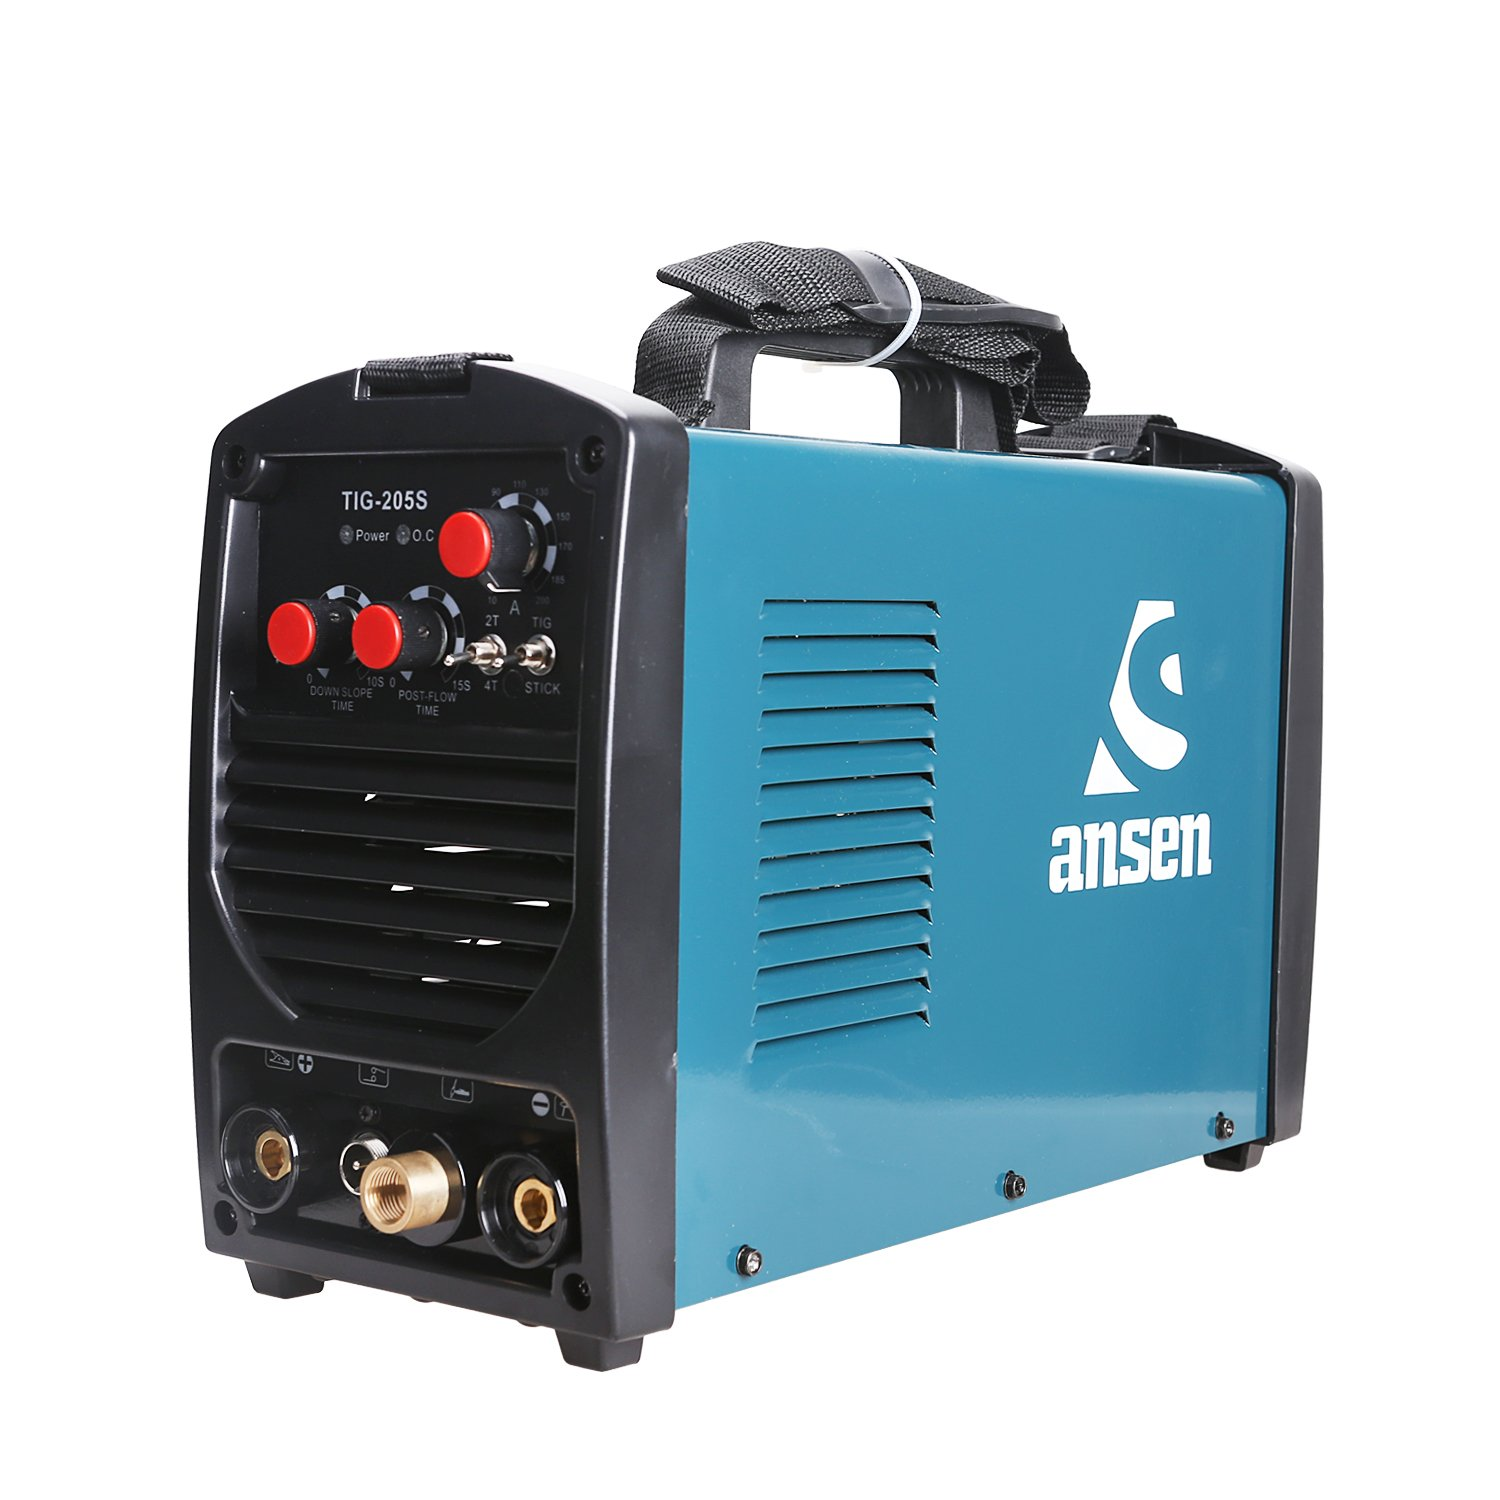 Ansen Portable IGBT Inverter Welder 115V/230V Dual Voltage TIG&STICK DC  Welding Machine (180AMP) (TIG-205S-200) - - Amazon.com